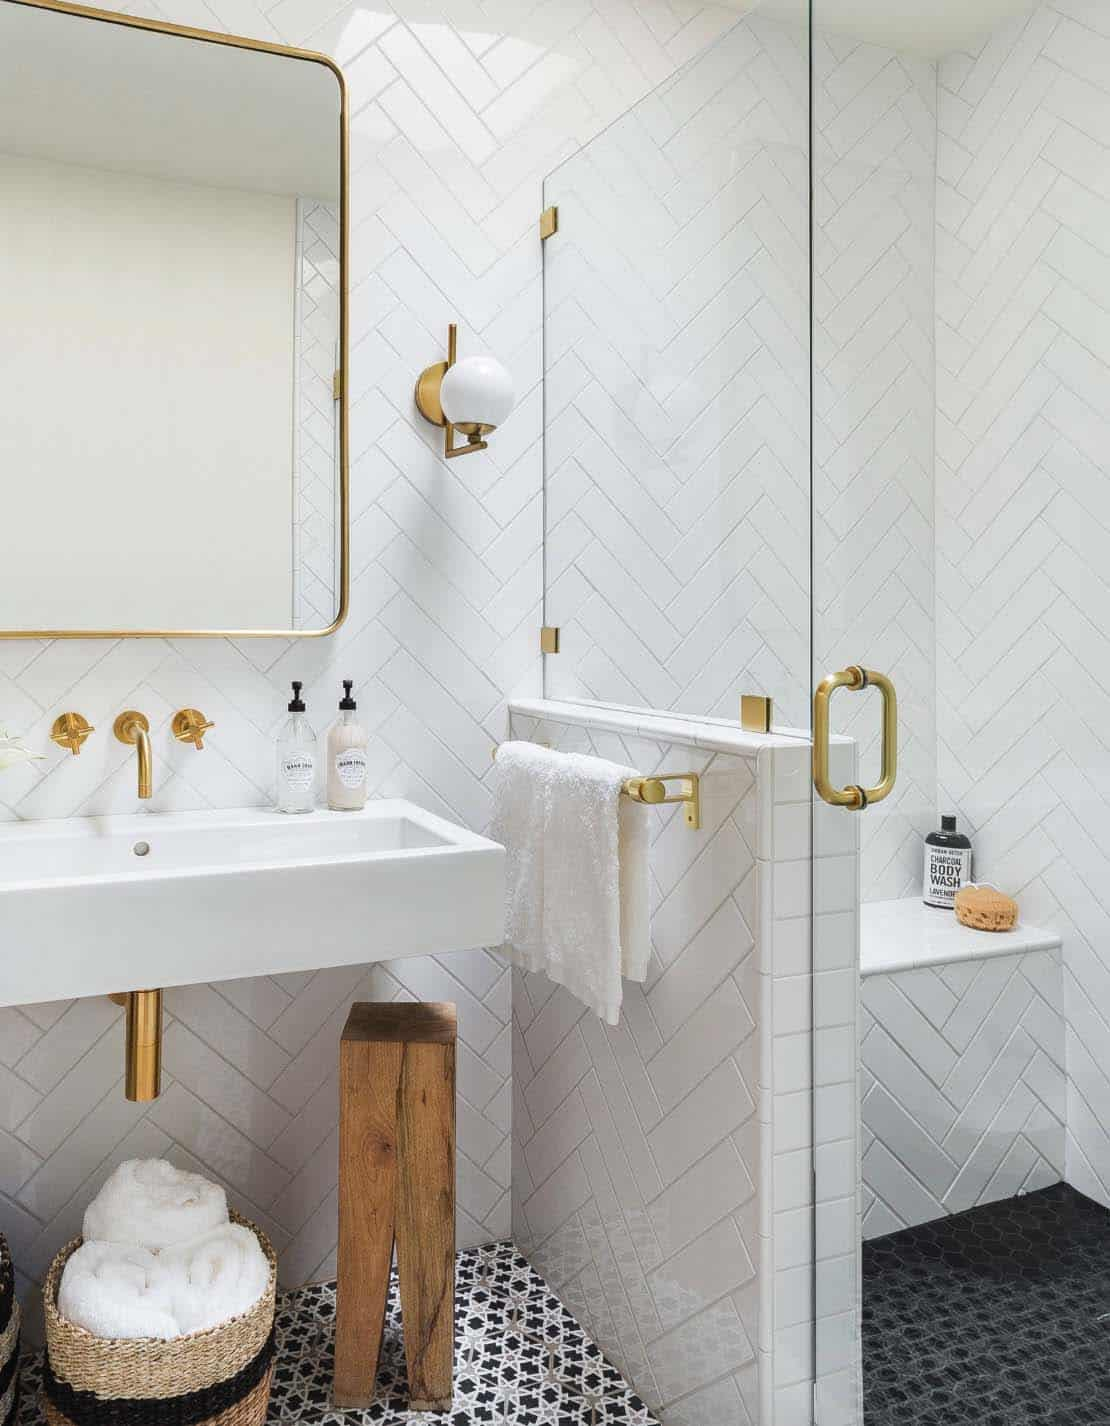 Modern Eclectic Bathroom | All White Bathroom | White Subway Tile Chevron Pattern Walls